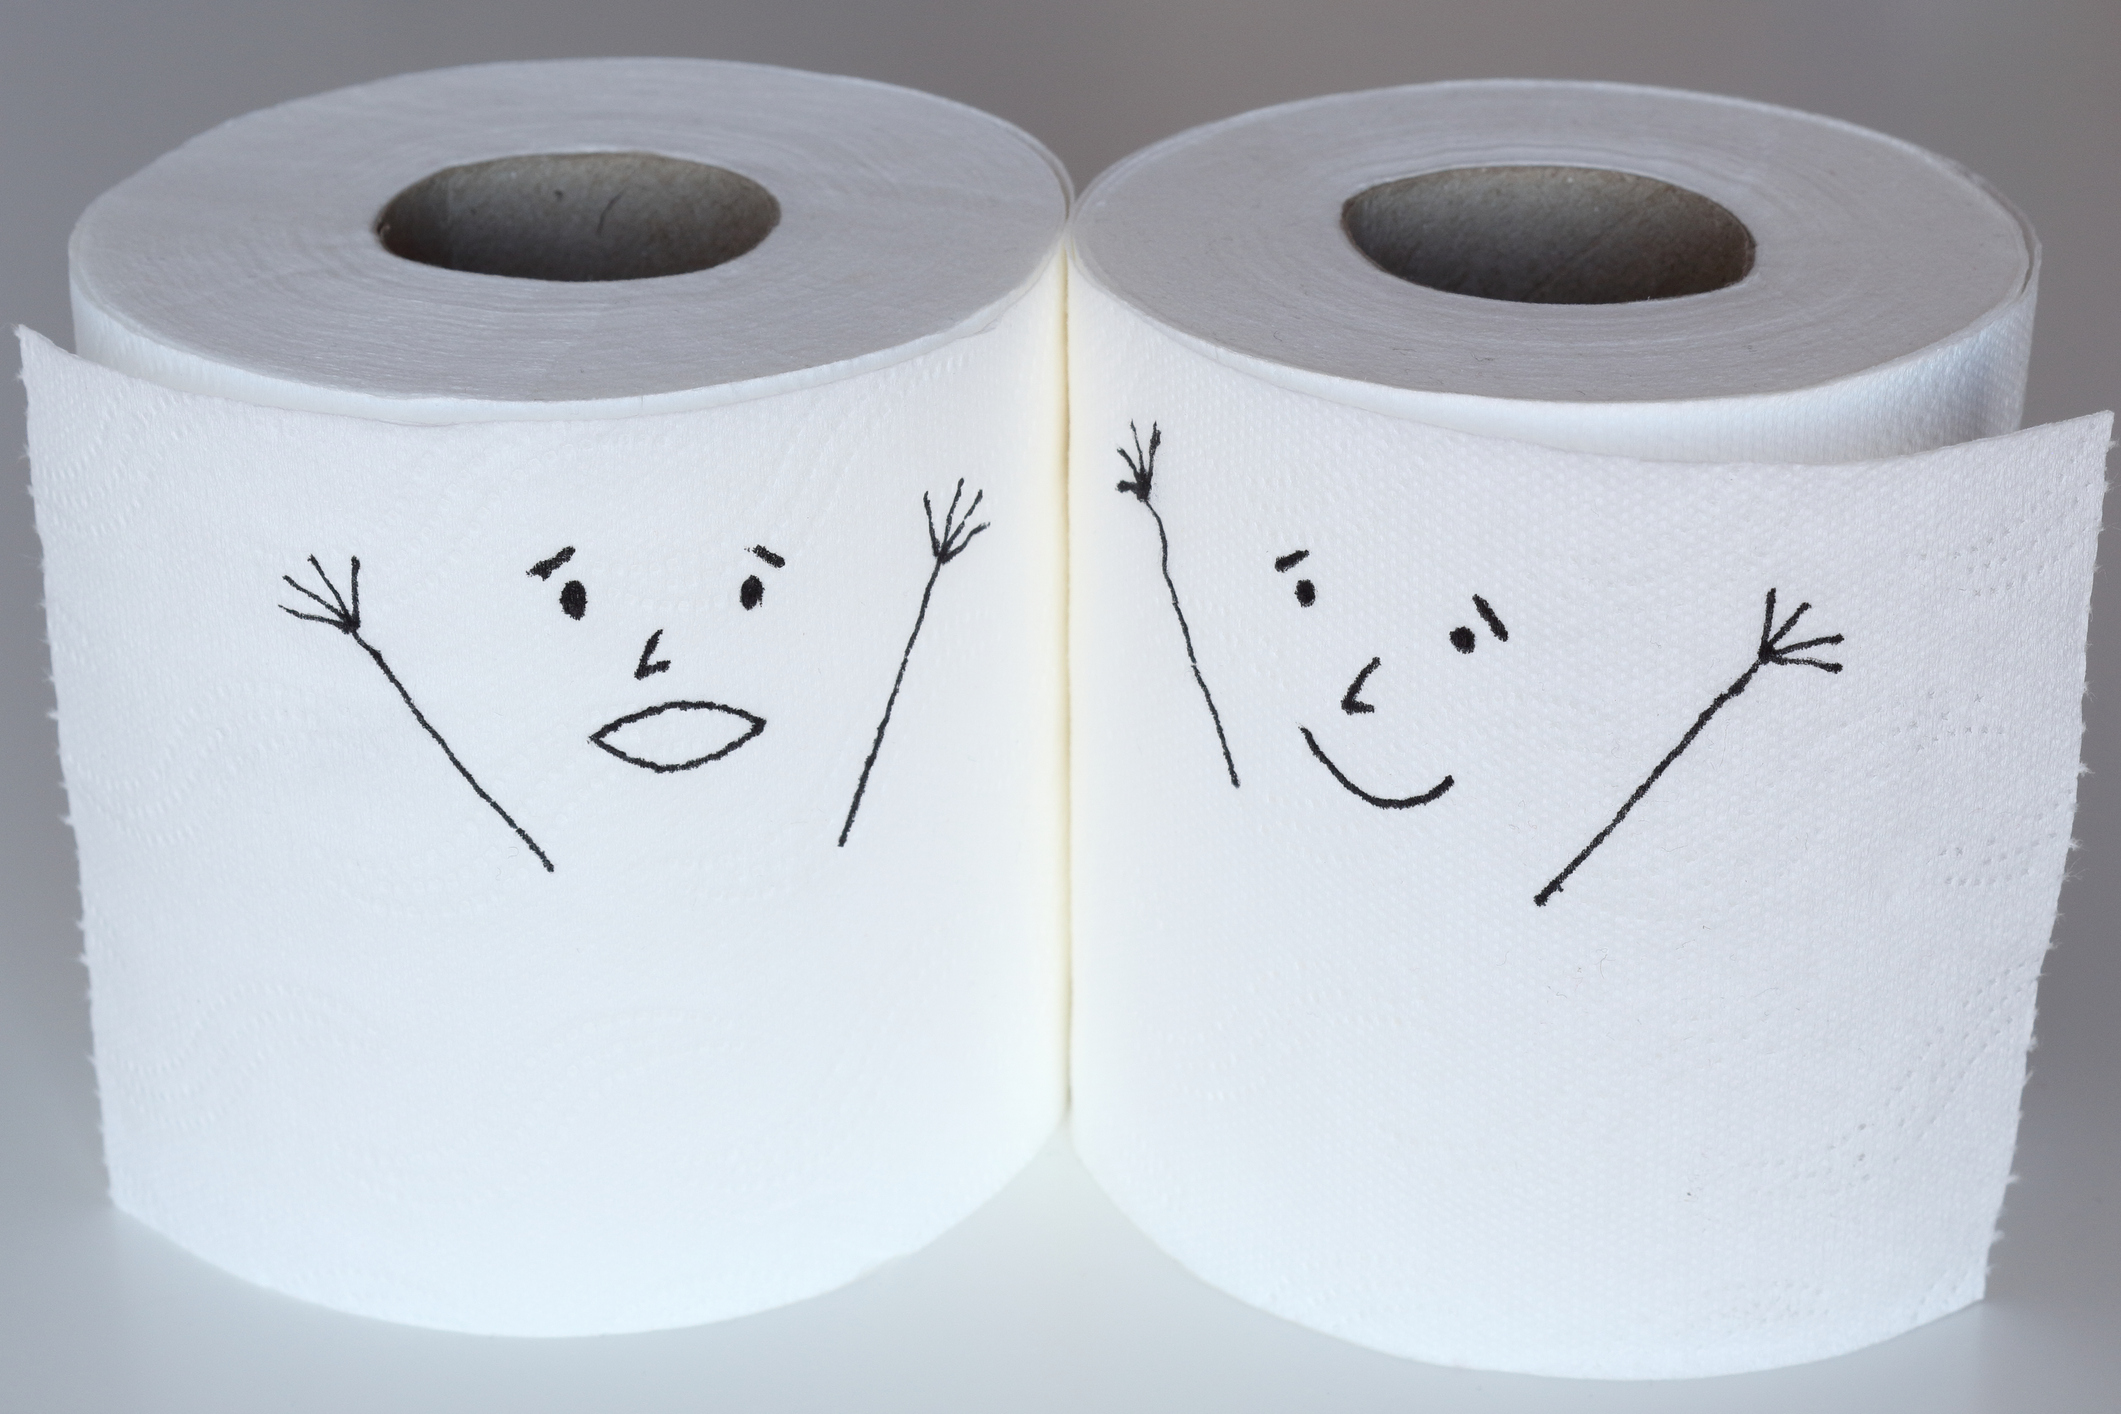 The great debate: should toilet paper be over or under?